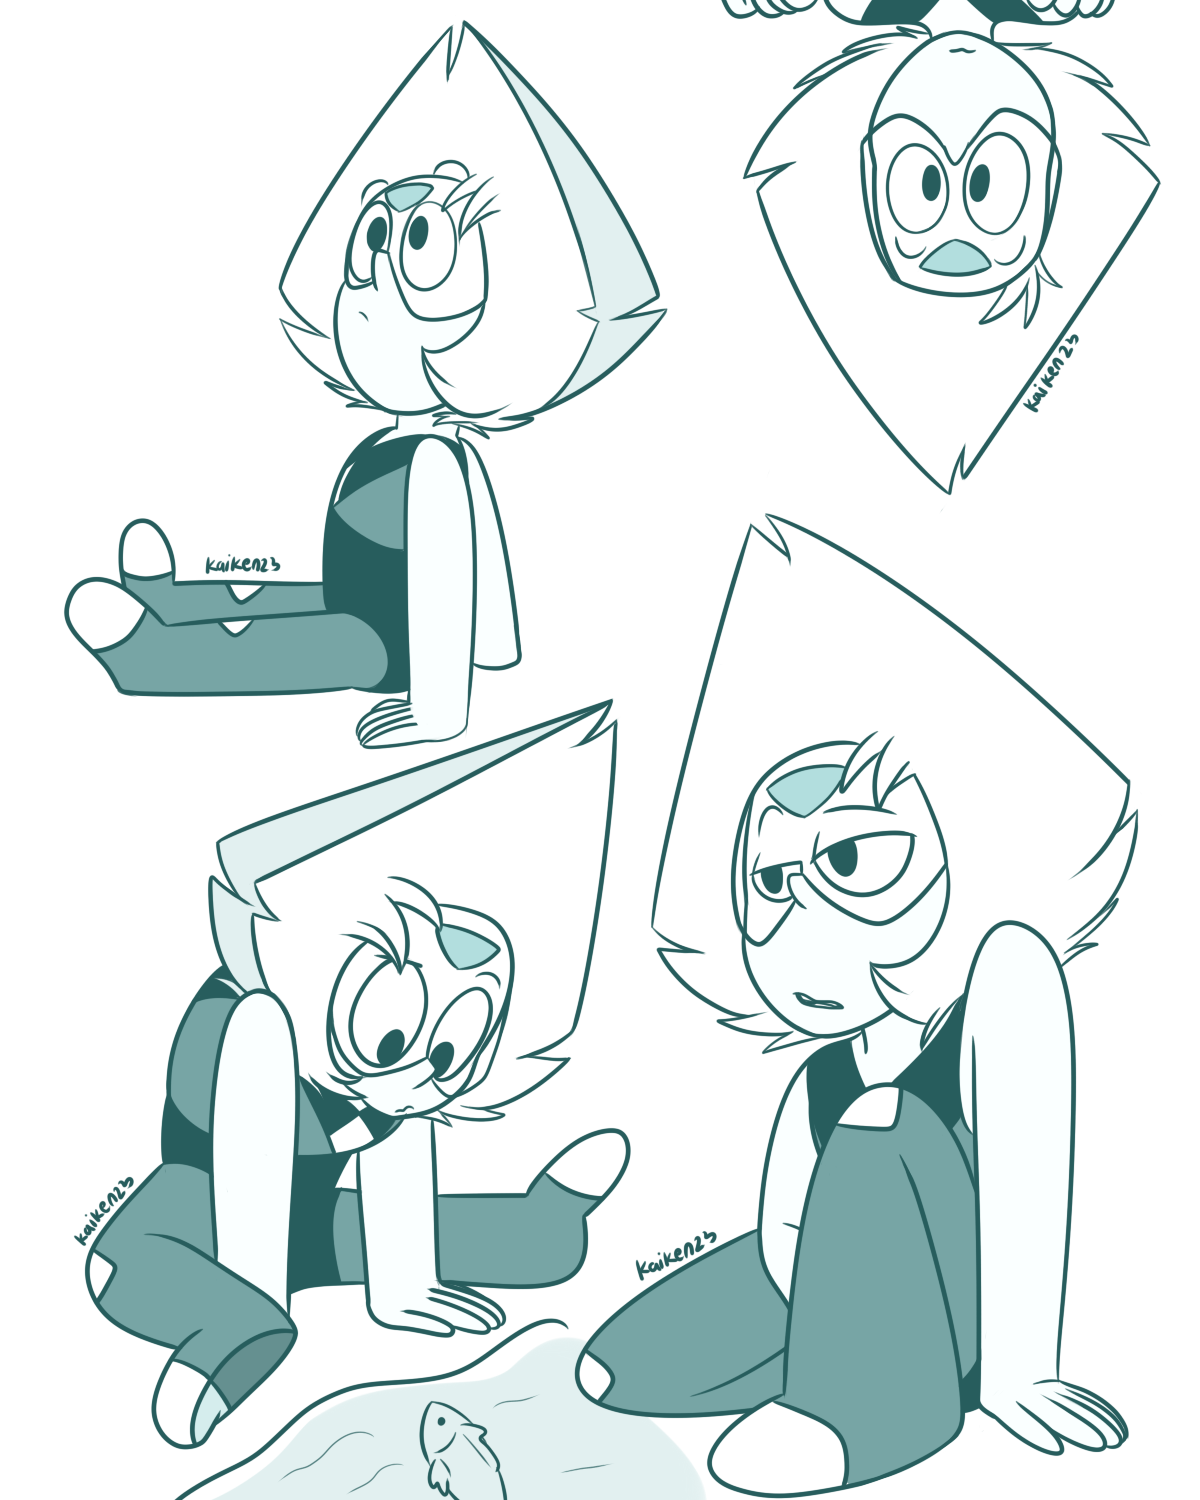 Day 65,66,67,68 . I took some random poses for these days .